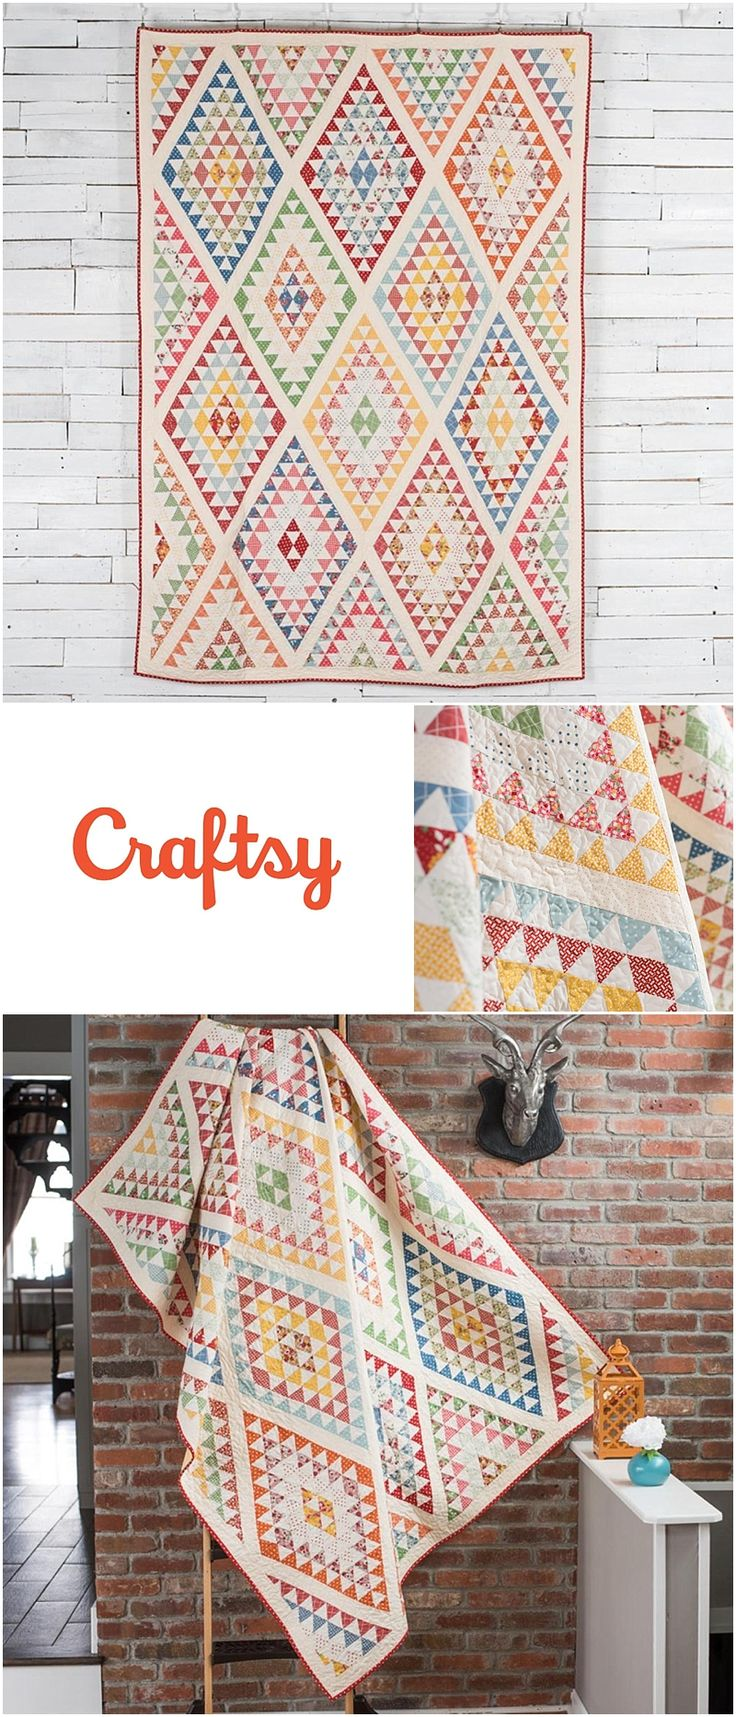 Diamonds Quilt Kit by Craftsy featuring American Jane by Moda Bread n Butter.   This modern quilt using American Jane fabrics is a fun and impressive intricate vintage inspired quilt.  Twin size quilt includes fabrics and quilt pattern.  Affiliate link.